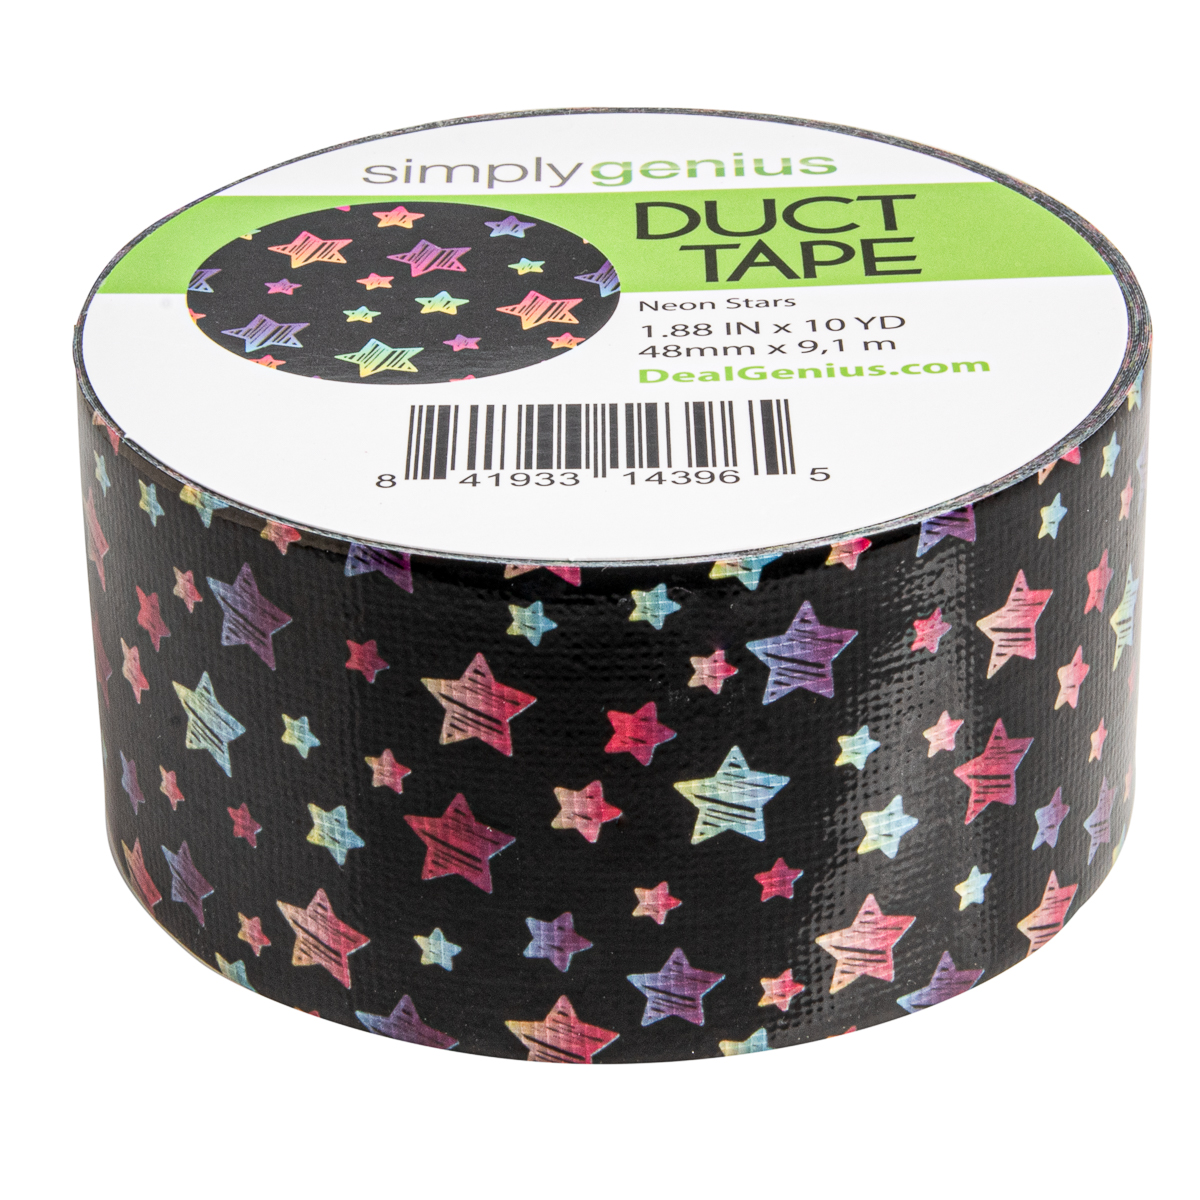 Simply-Genius-Duct-Tape-Roll-Colors-Patterns-Craft-Supplies-Colored-amp-Patterned thumbnail 92